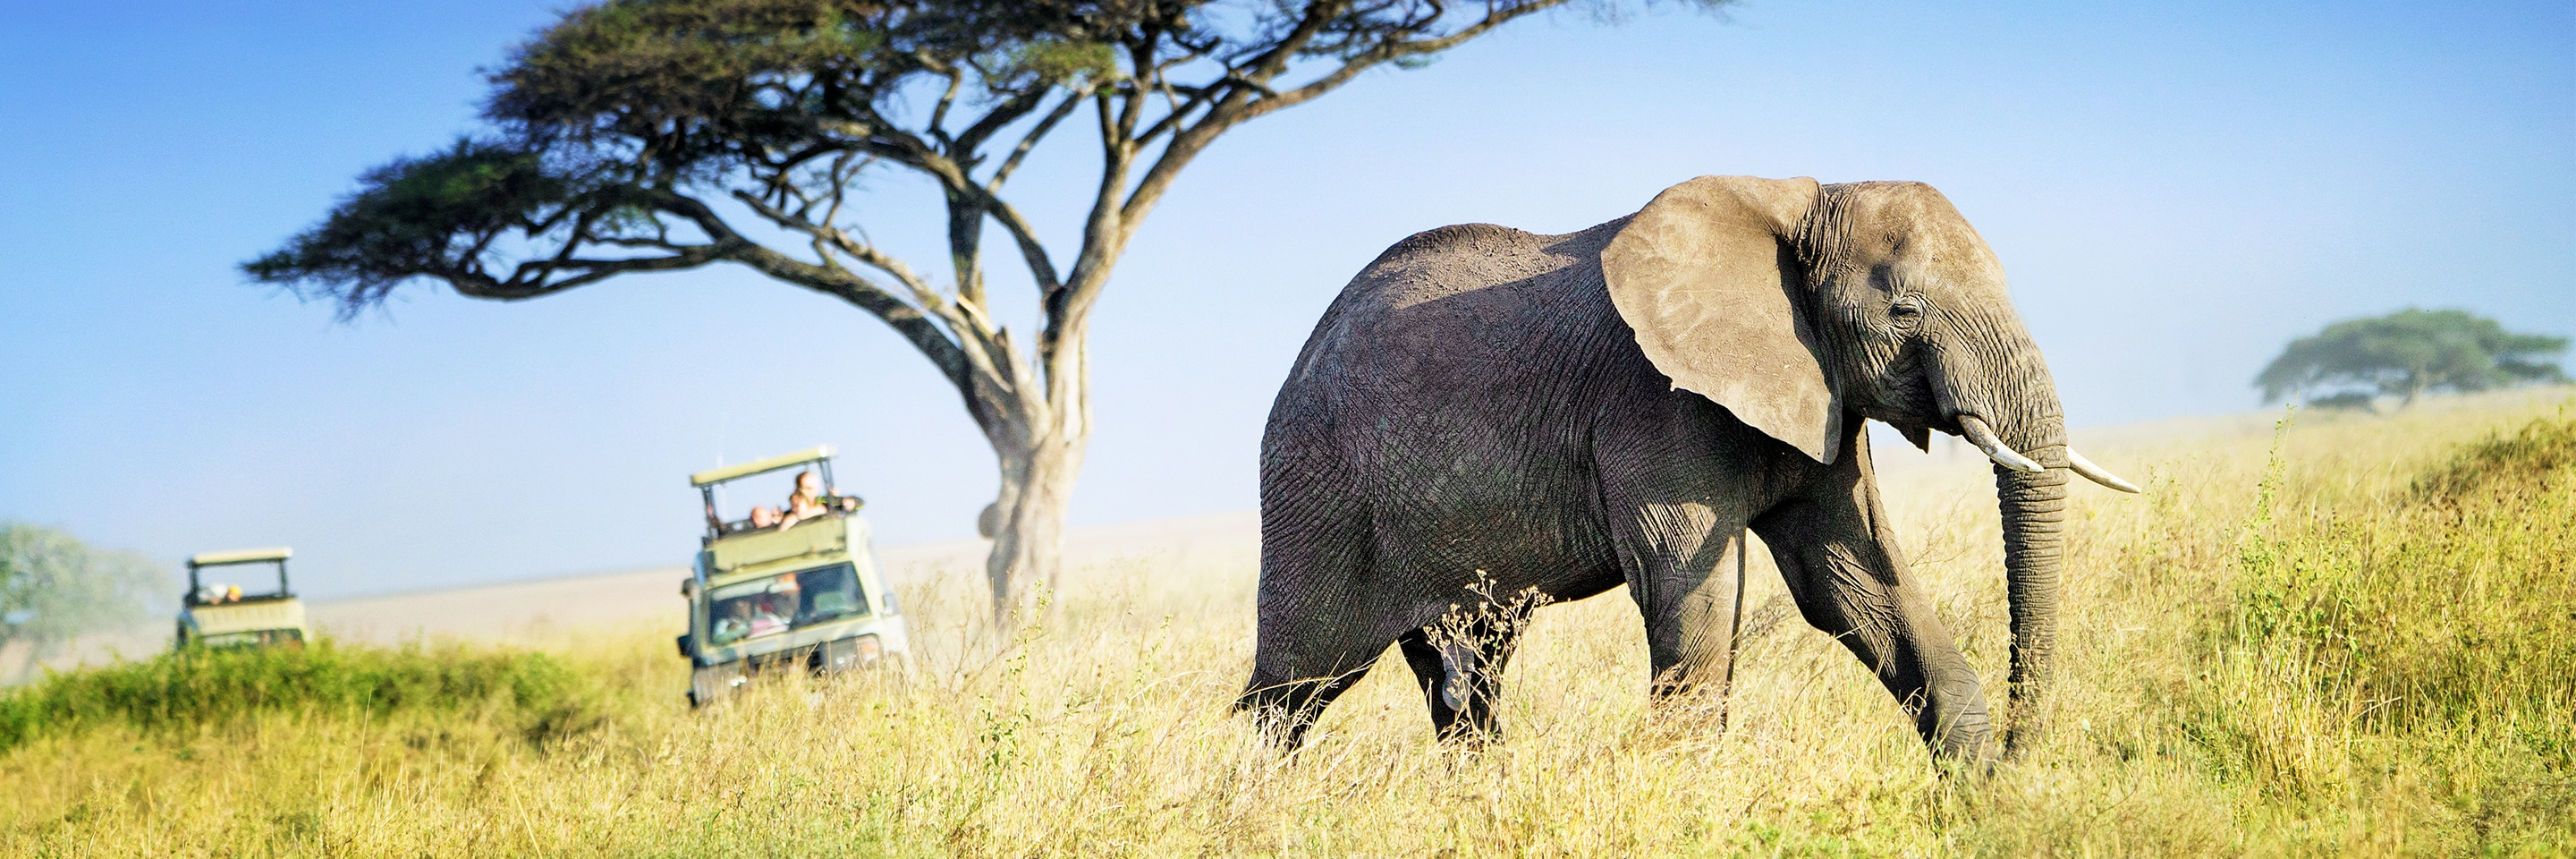 Elephant seen on African safari adventure.